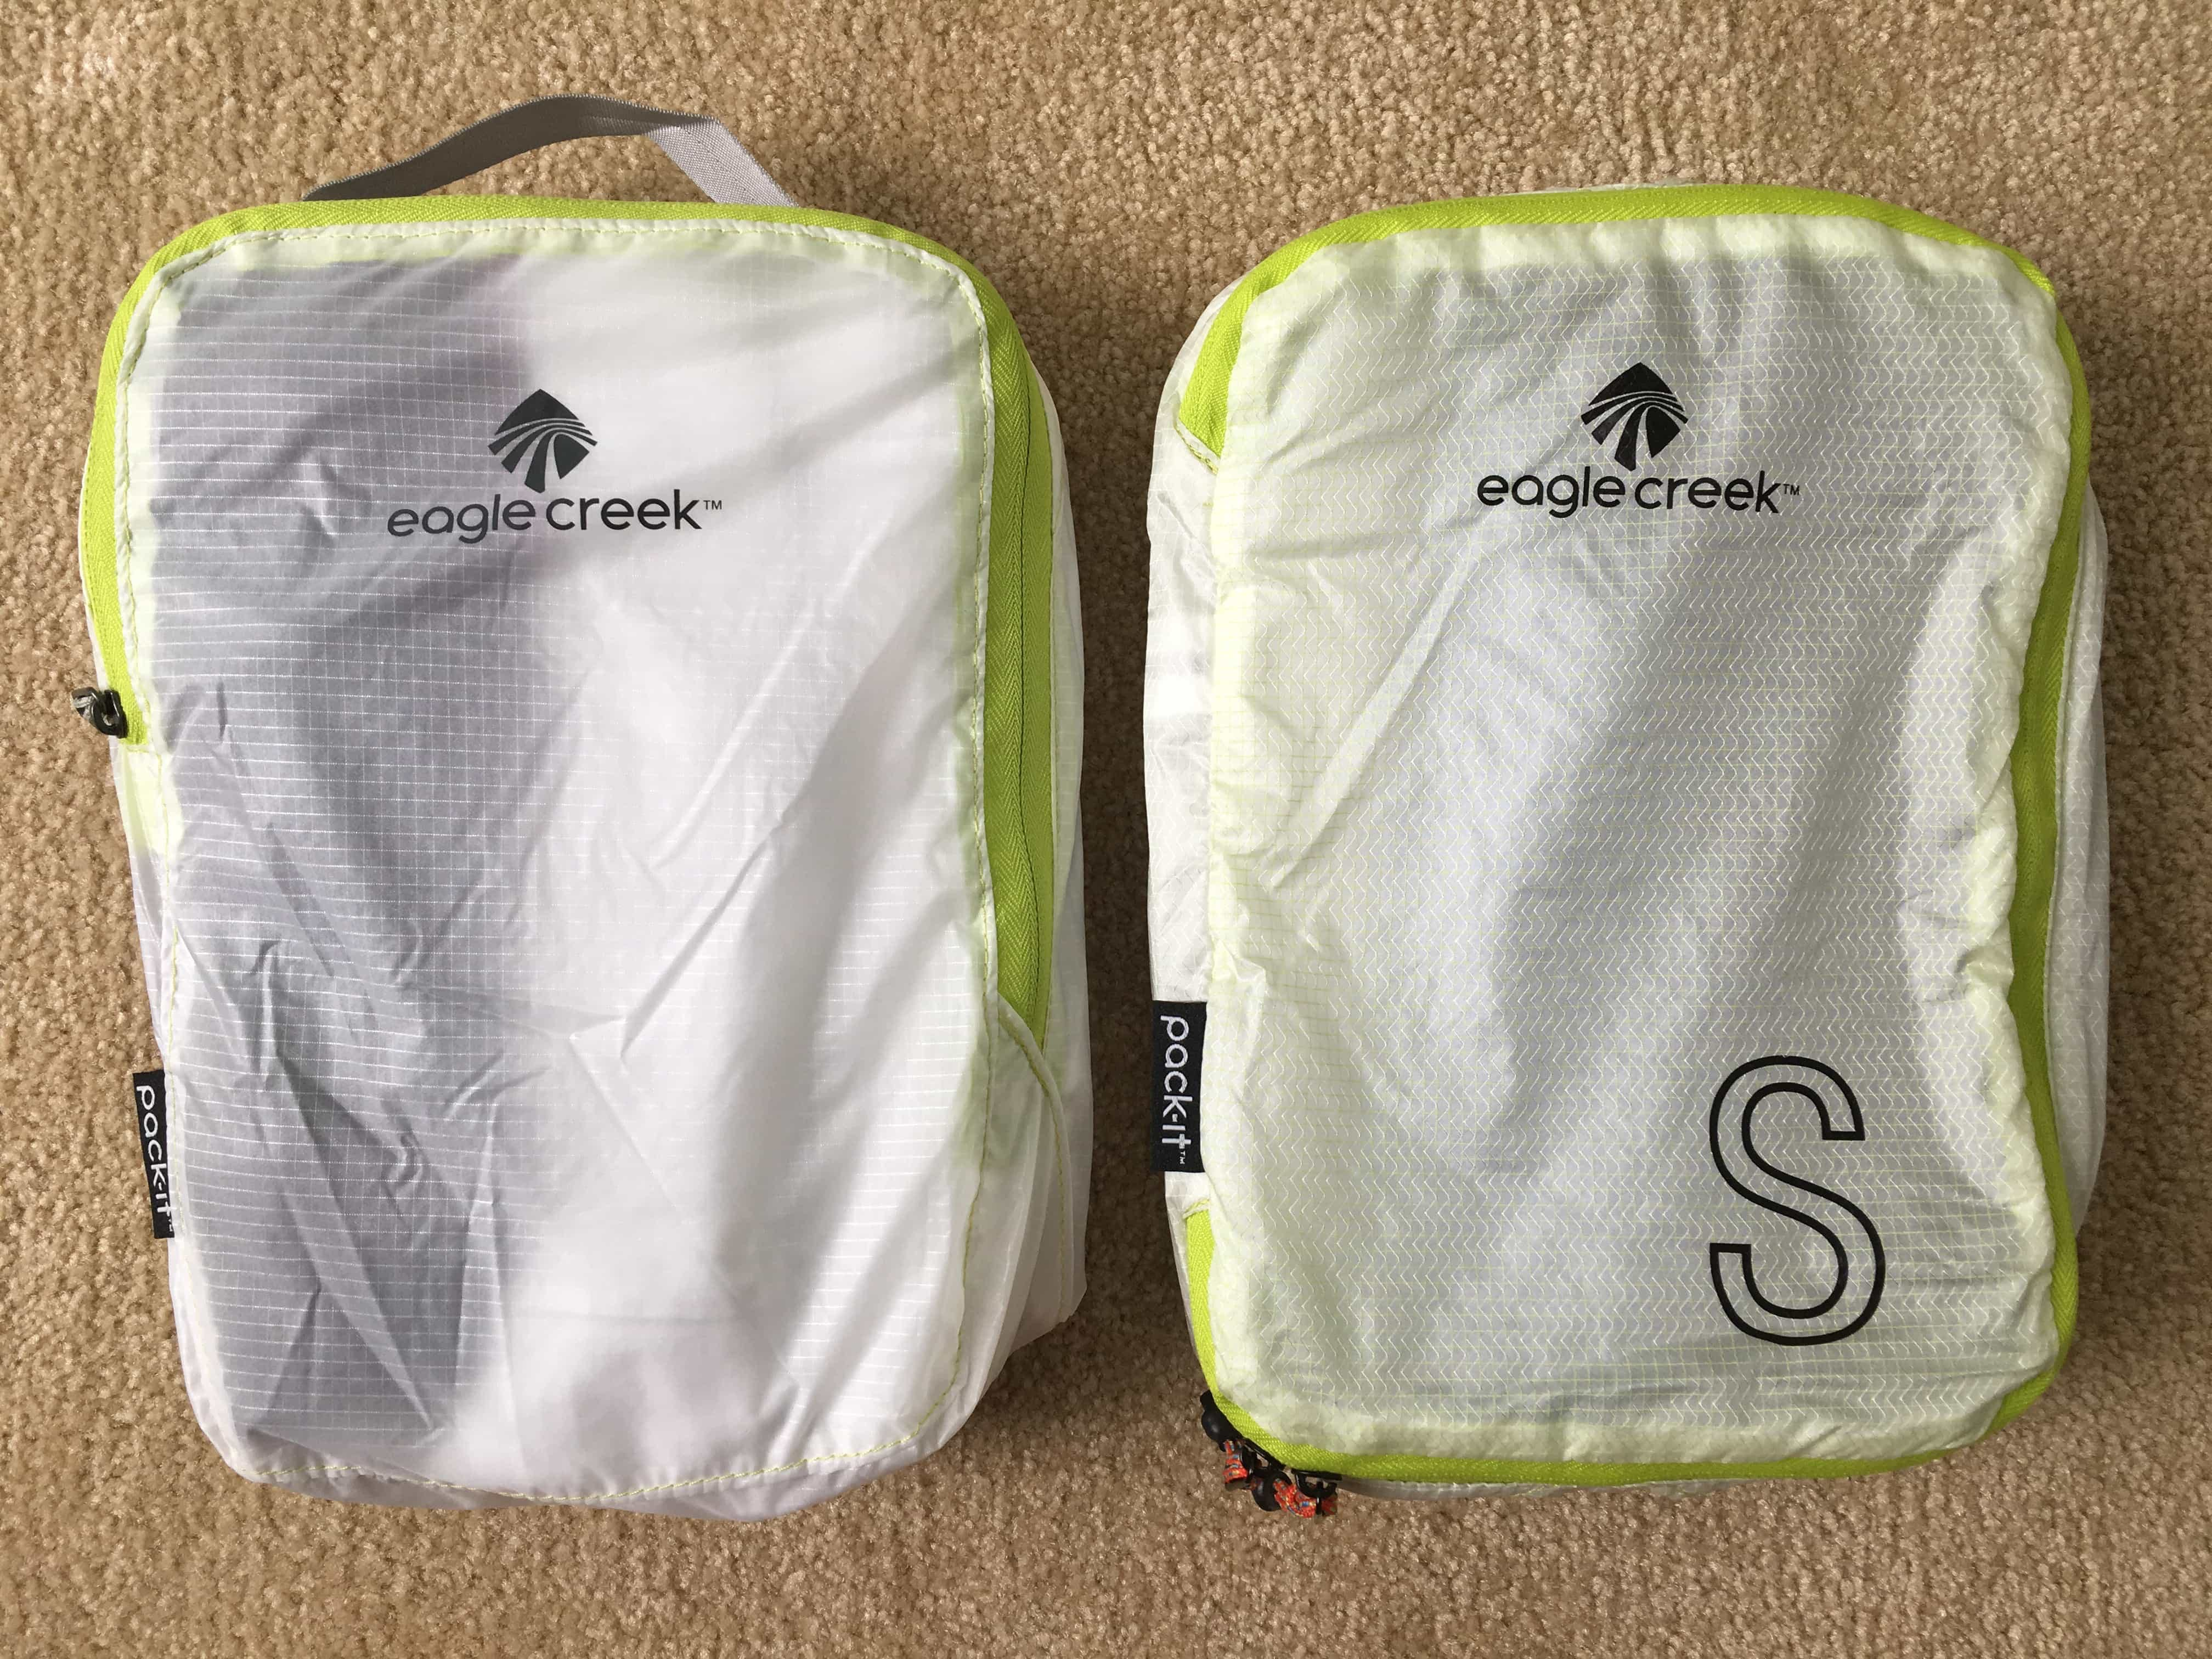 Eagle Creek Pack-It Specter Cube (left) and Specter Tech Cube (right)